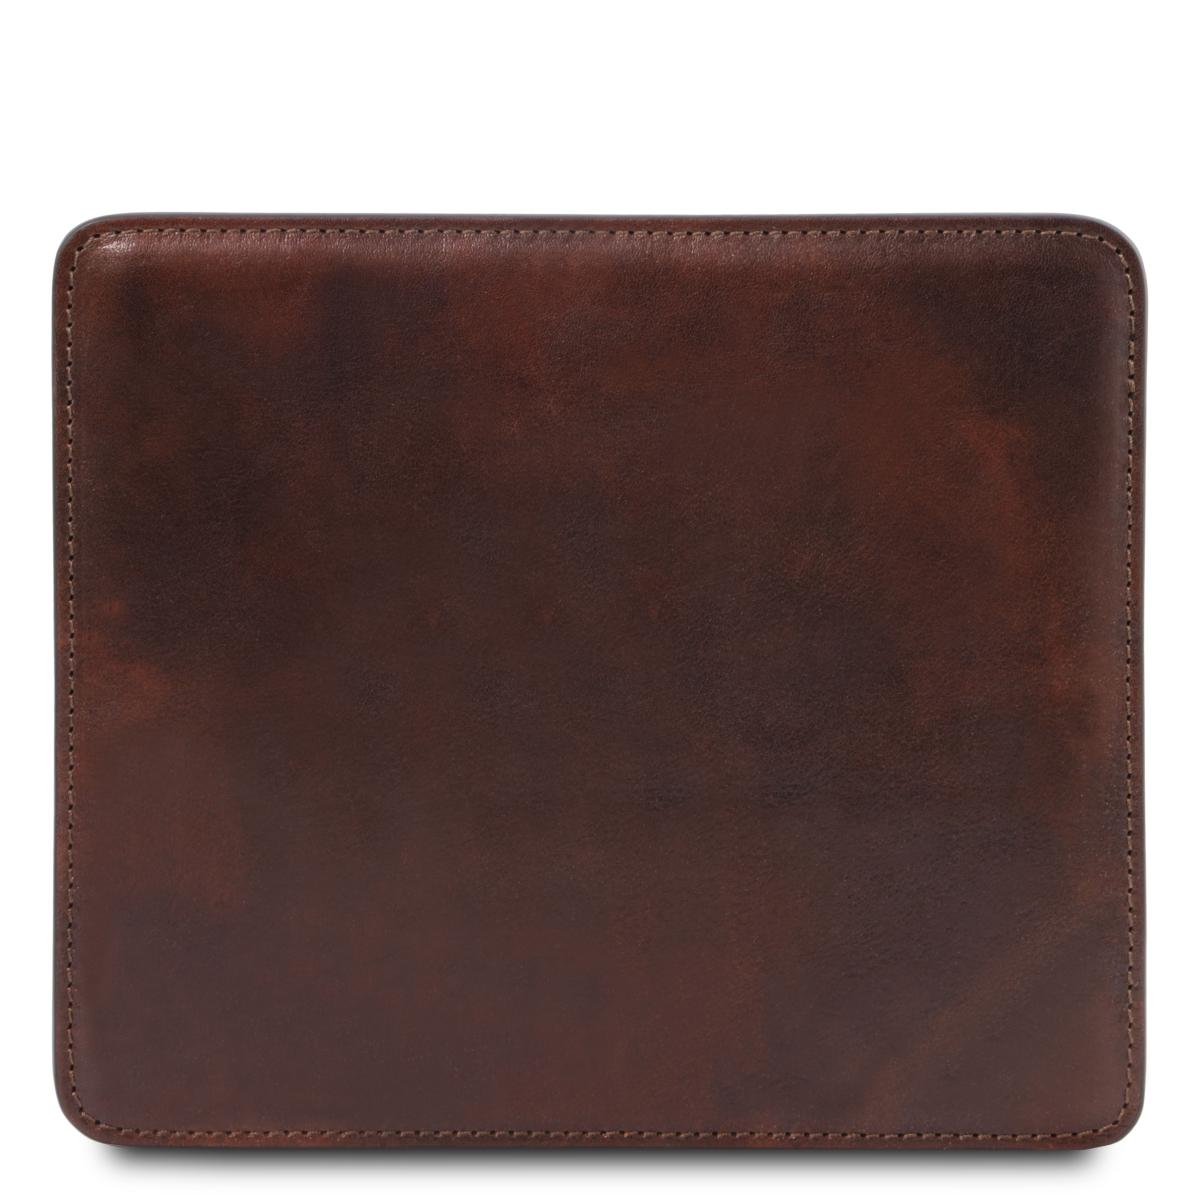 tapis de souris cuir luxe tuscany leather